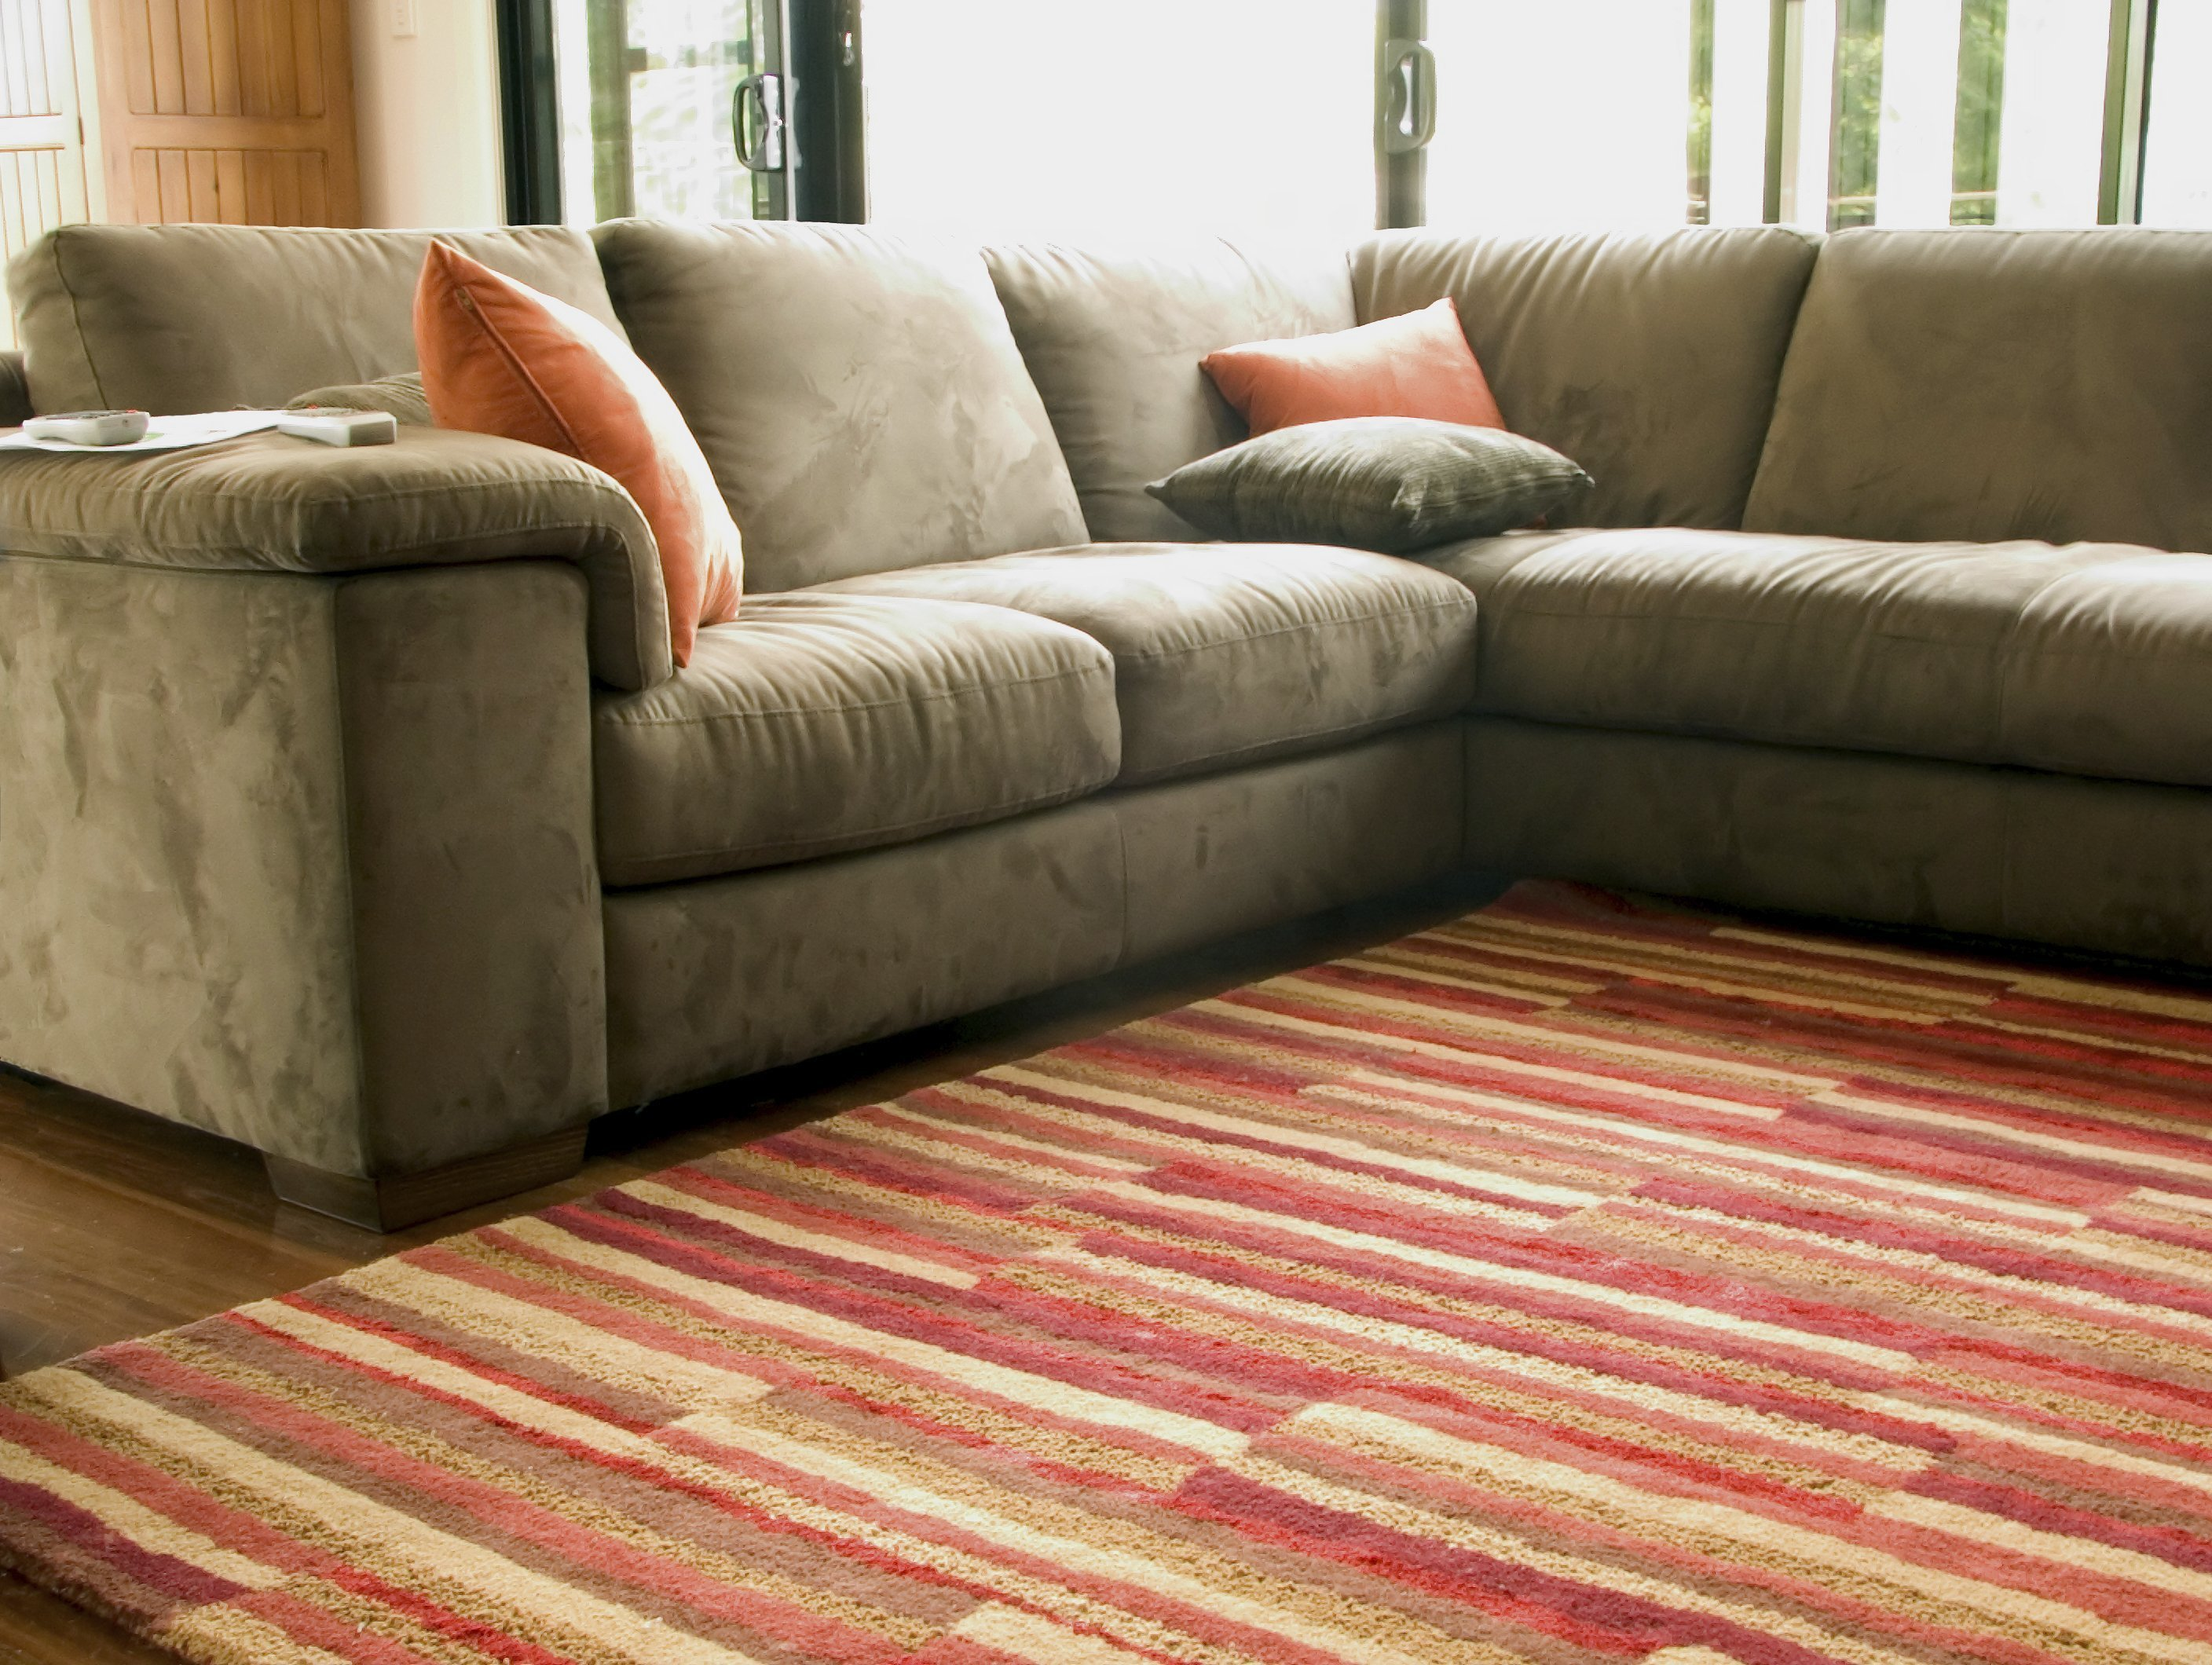 Elite Green Team Chem-Dry cleans rugs for a healthy home